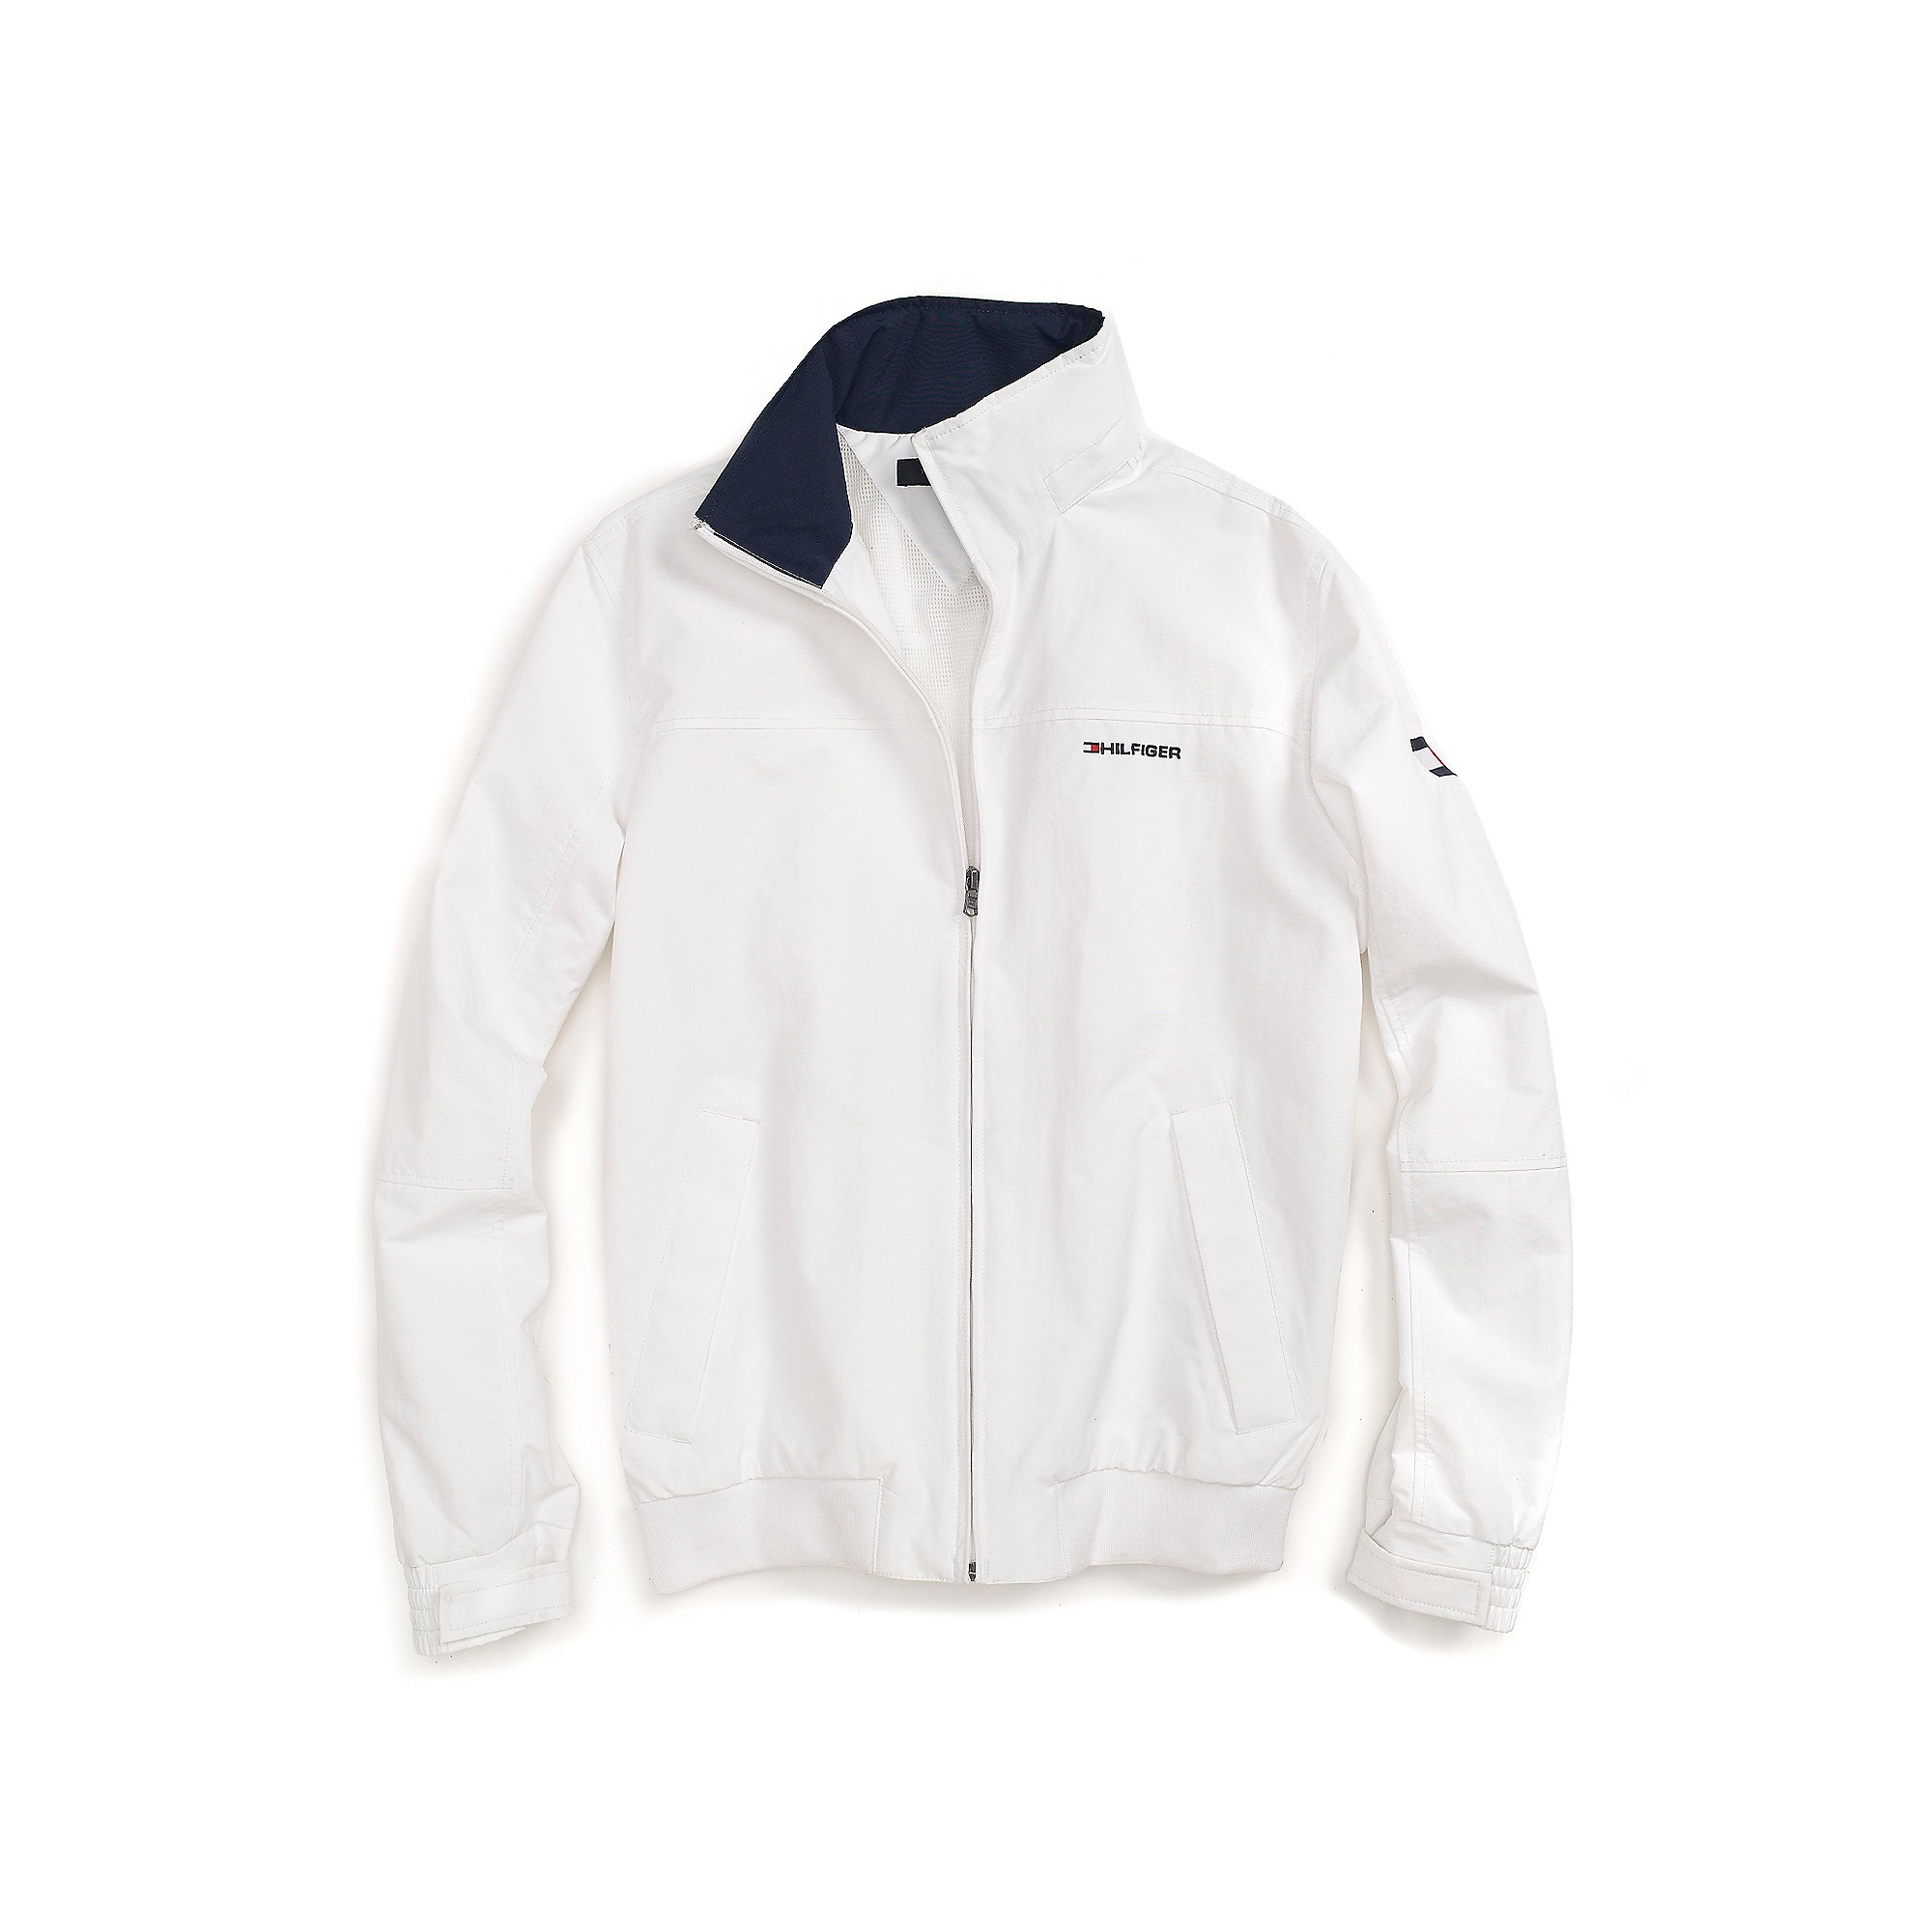 tommy hilfiger yacht jacket in white for men classic white lyst. Black Bedroom Furniture Sets. Home Design Ideas